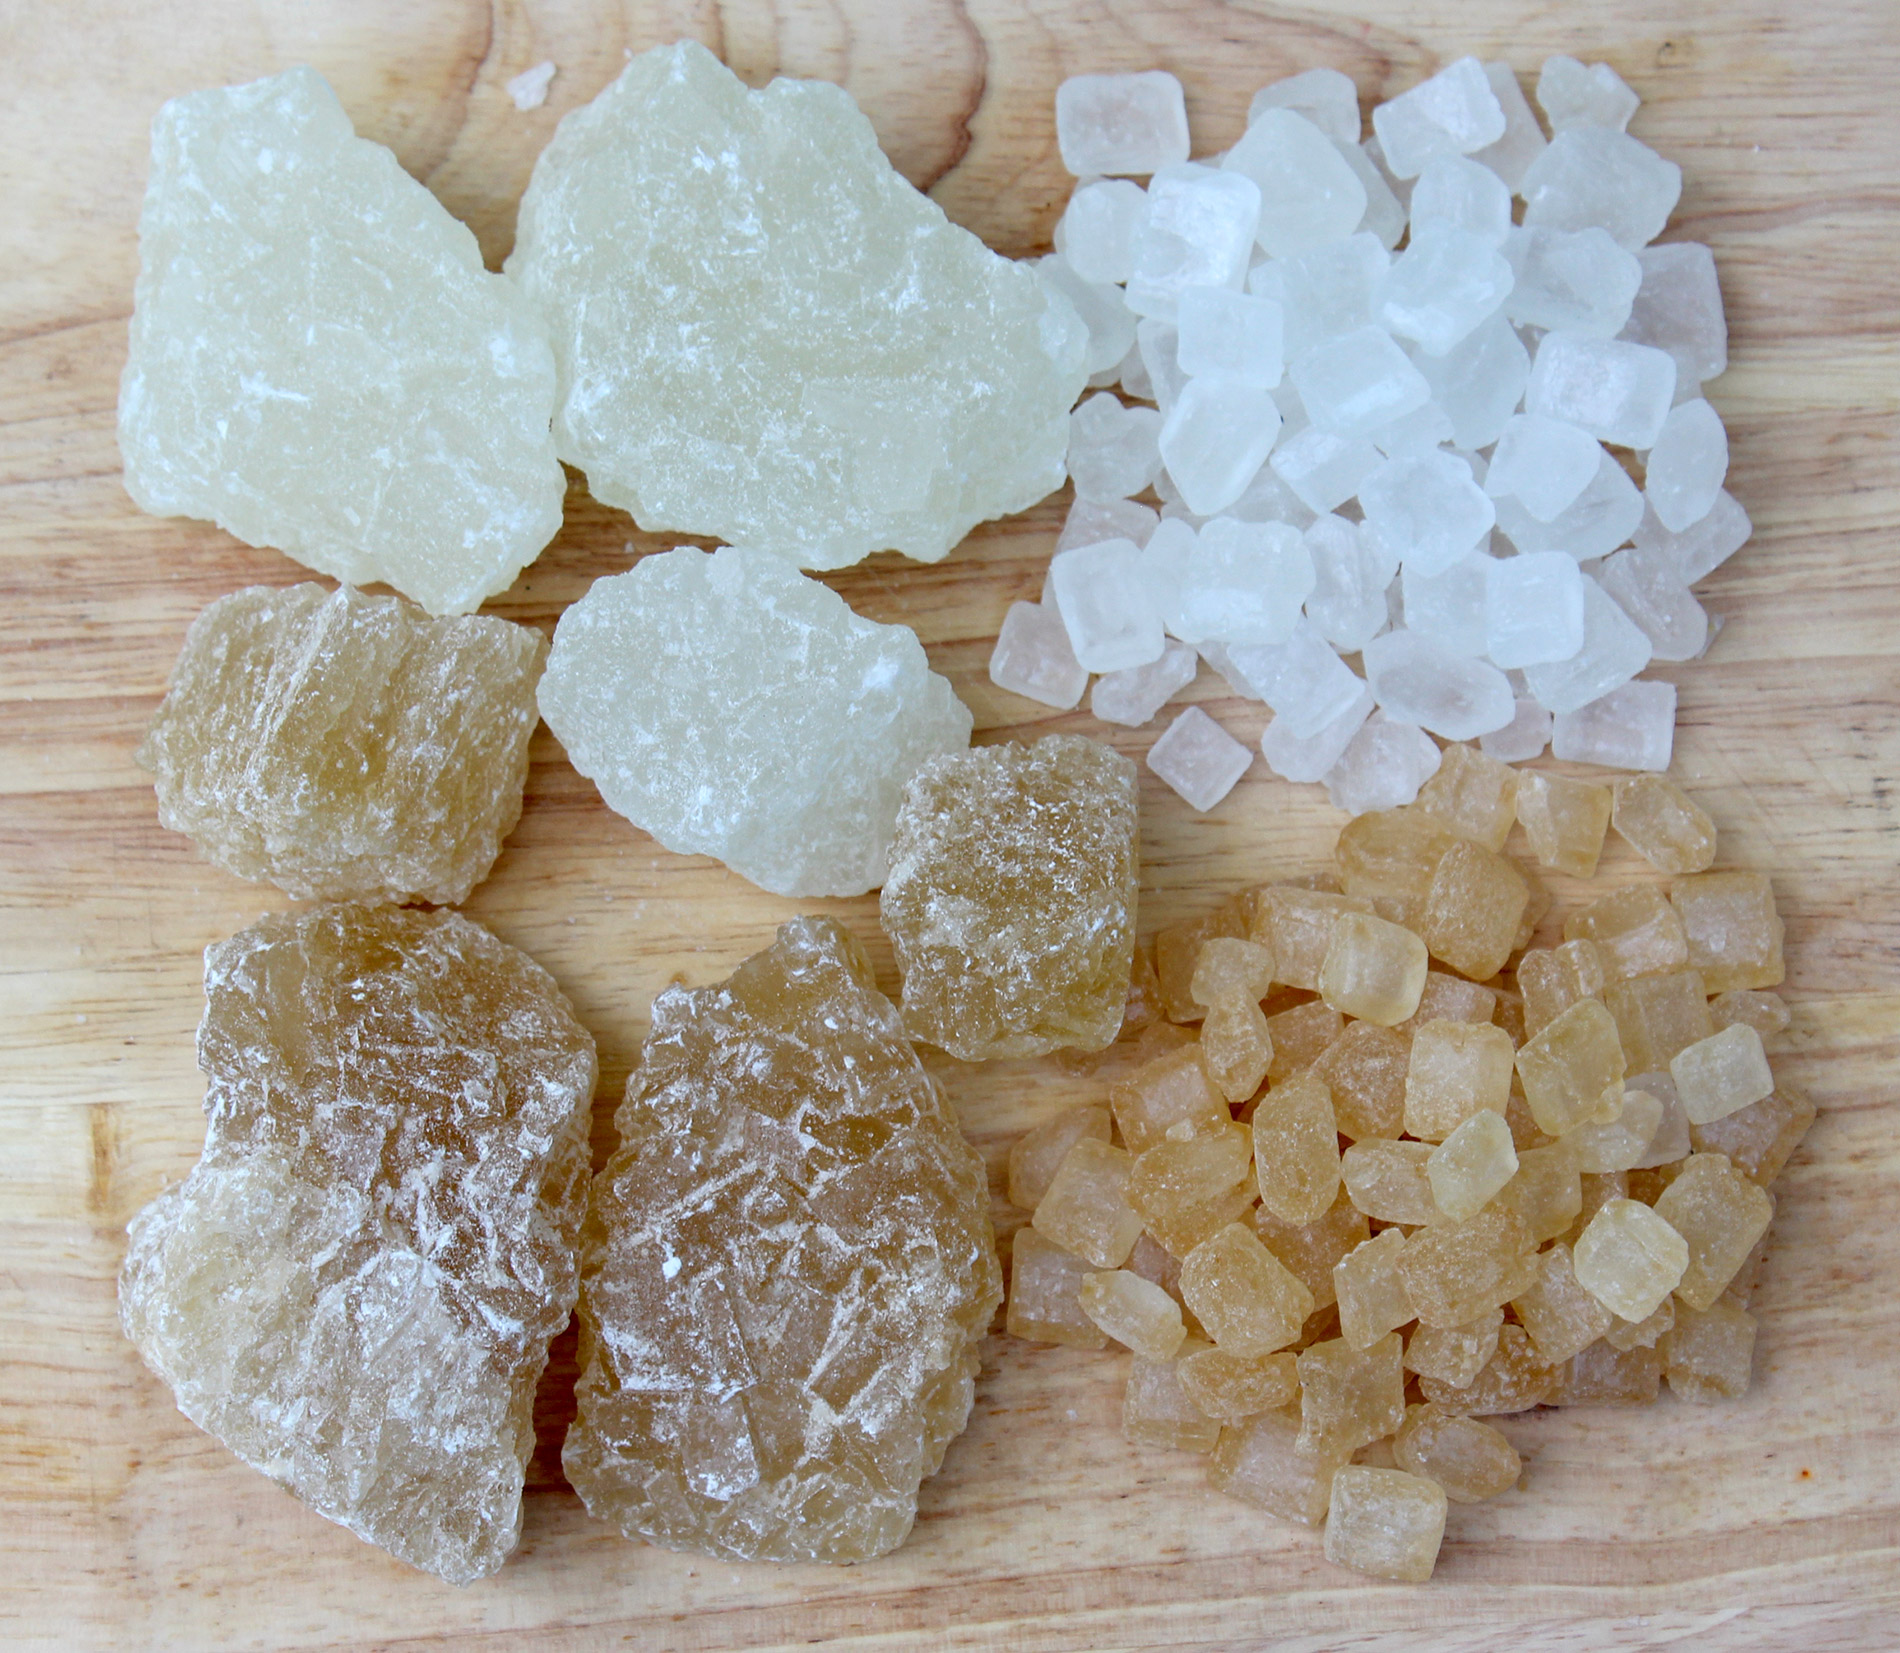 What Chinese Rock Sugar is